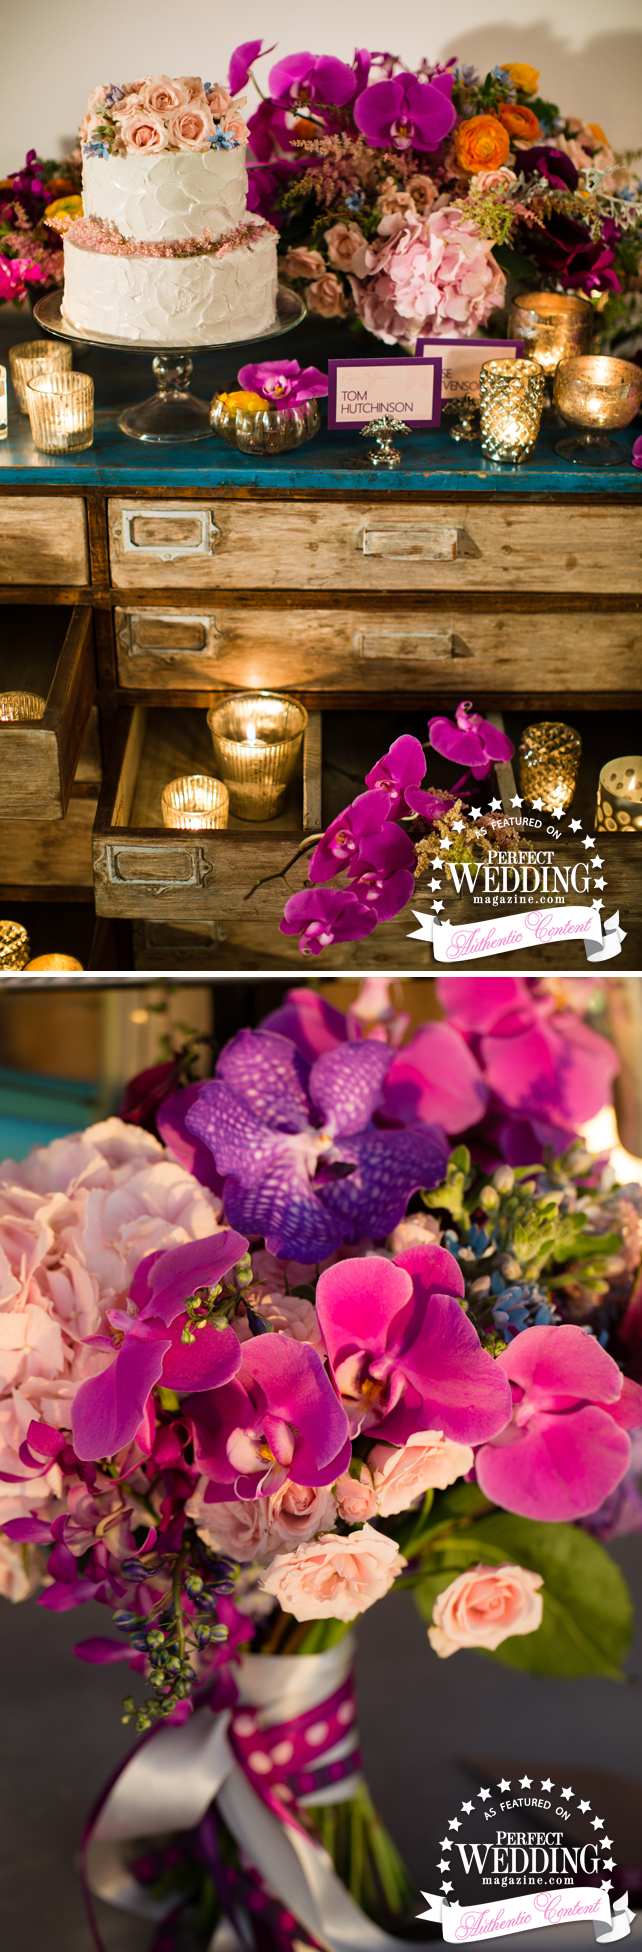 Wedding Décor, Destination Weddings, Destination Wedding in Cabo, El Ganzo, El Ganzo Hotel, ChrisplusLynn, PerfectWedding Magazine, Perfect Wedding magazine blog, Intimate Weddings, Floral